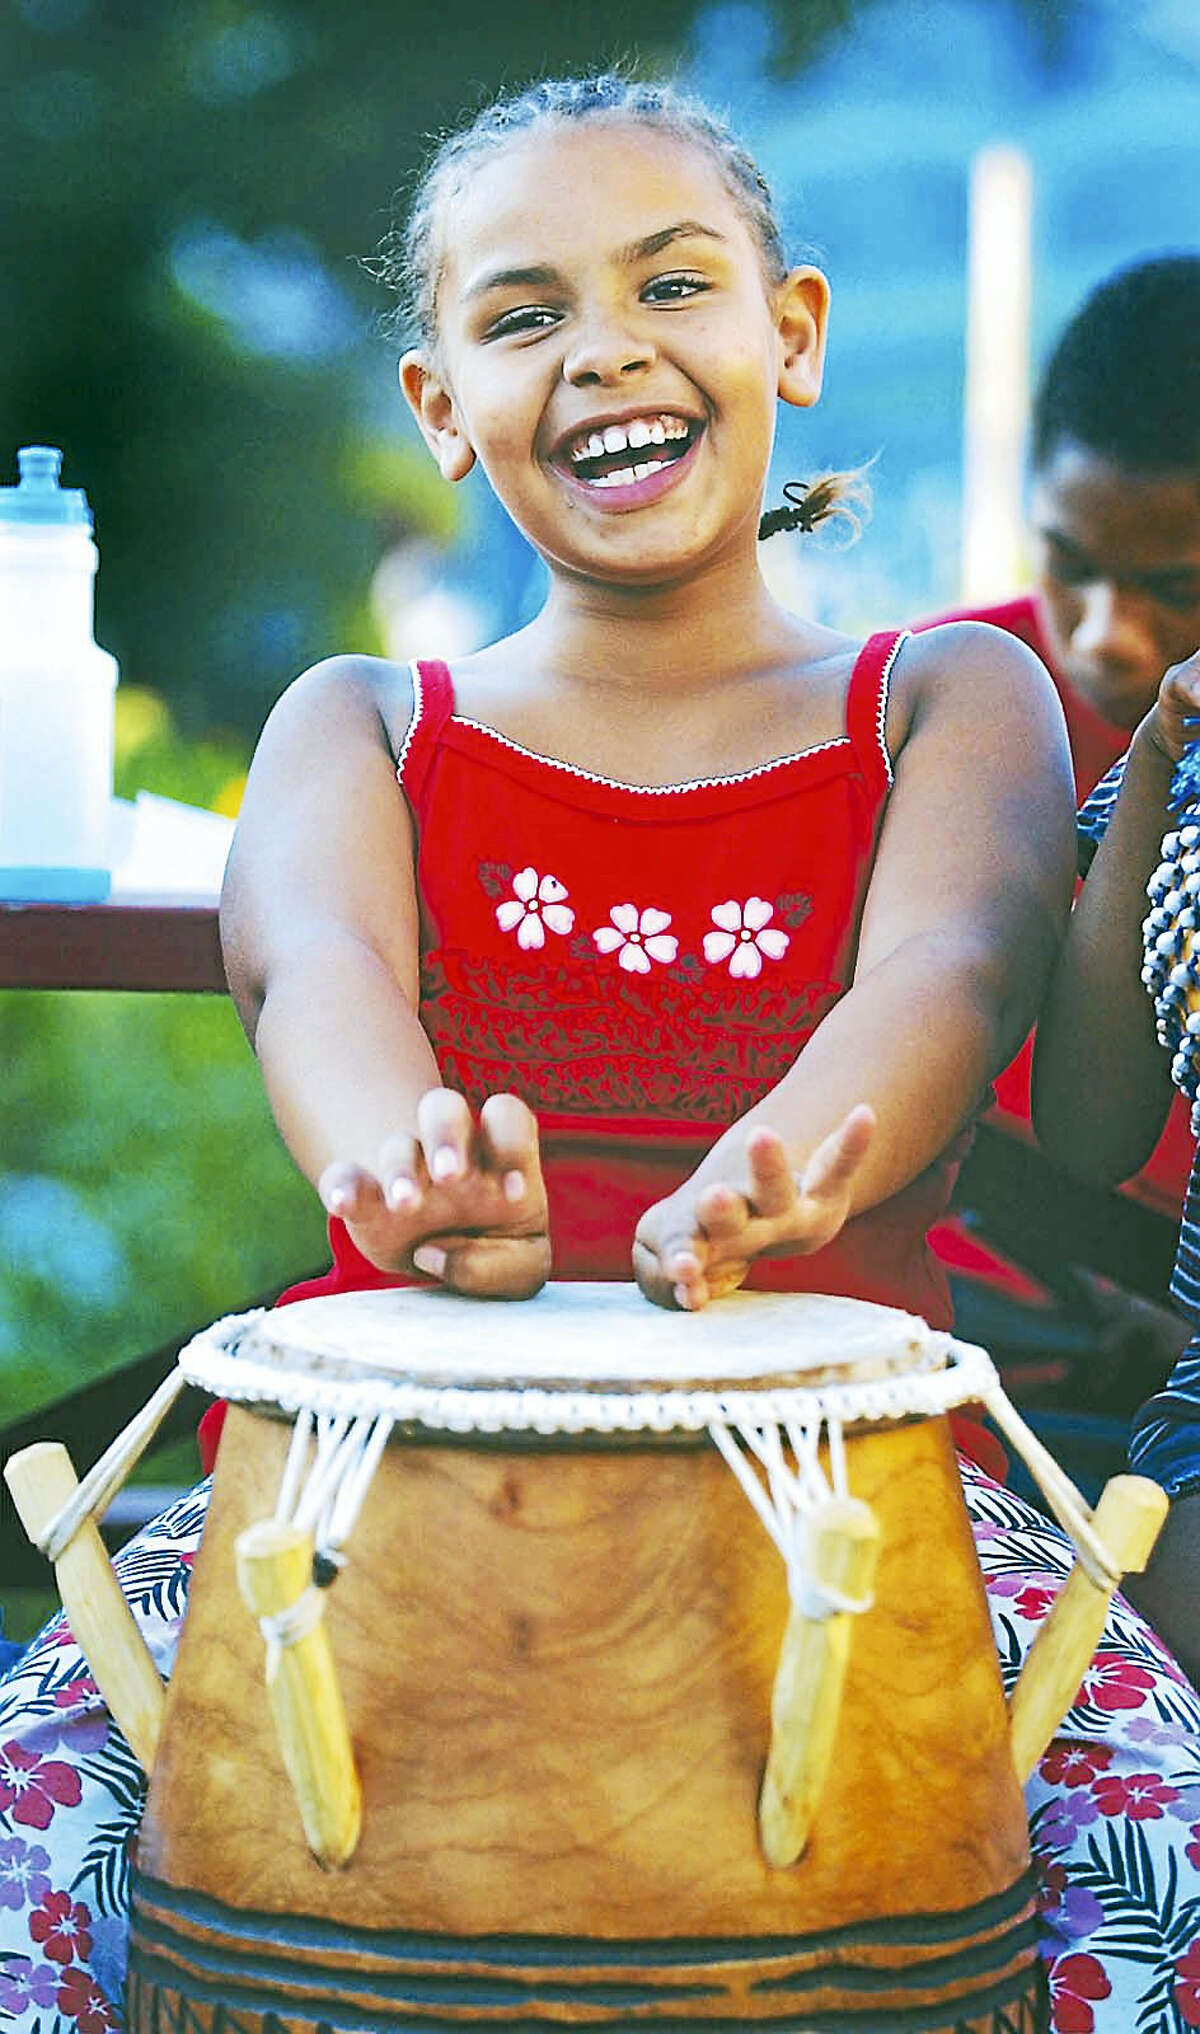 Kayla Daley laughs while drumming on an Oprenten hand drum from the West African nation of Ghana in the Ferry Street Community Garden at the Green Street Arts Center in this file photo.